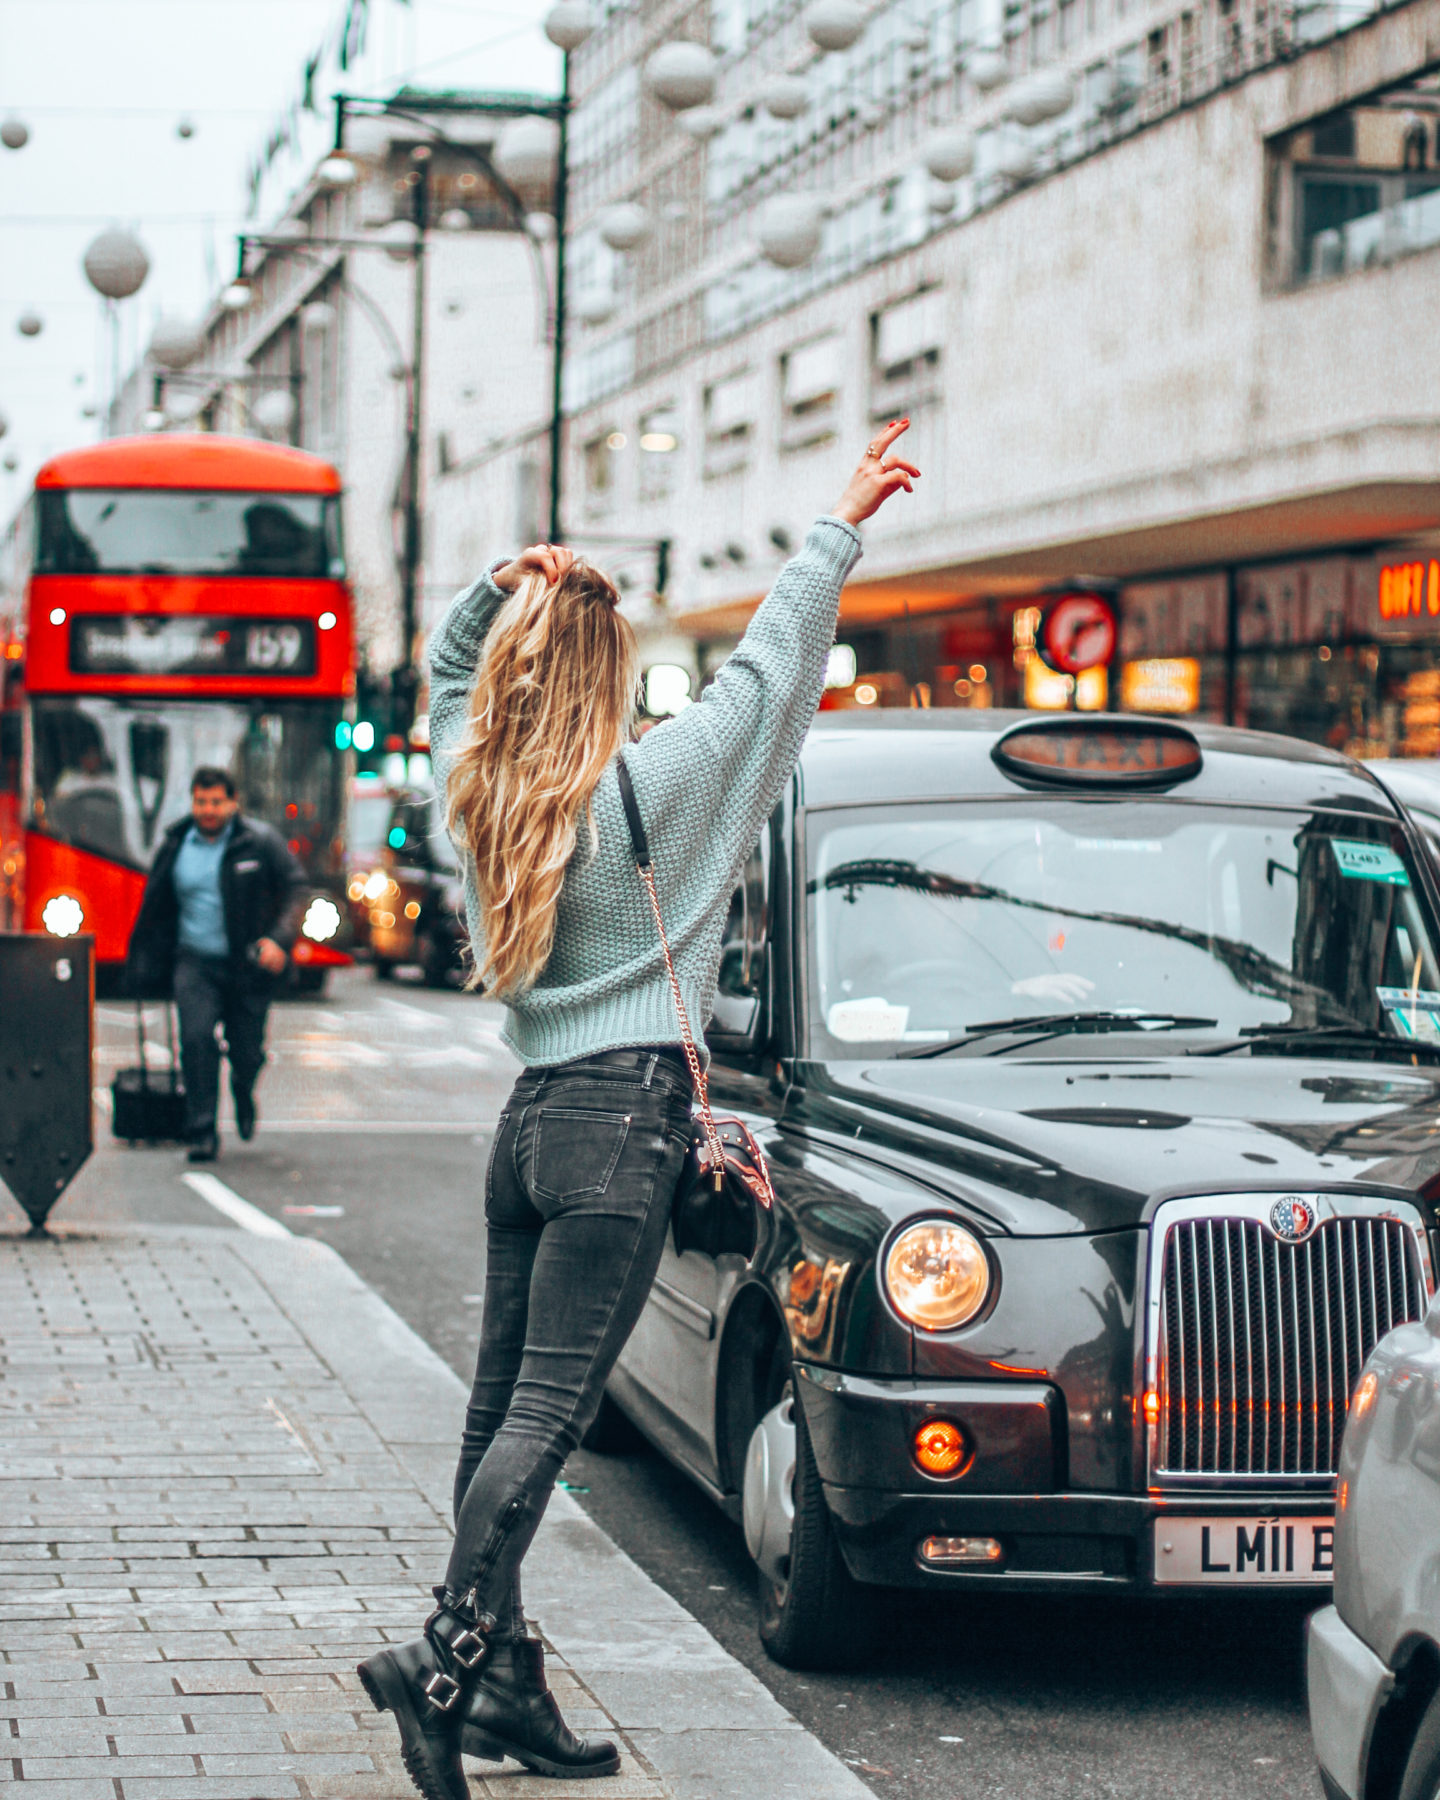 MY LONDON CITY GUIDE